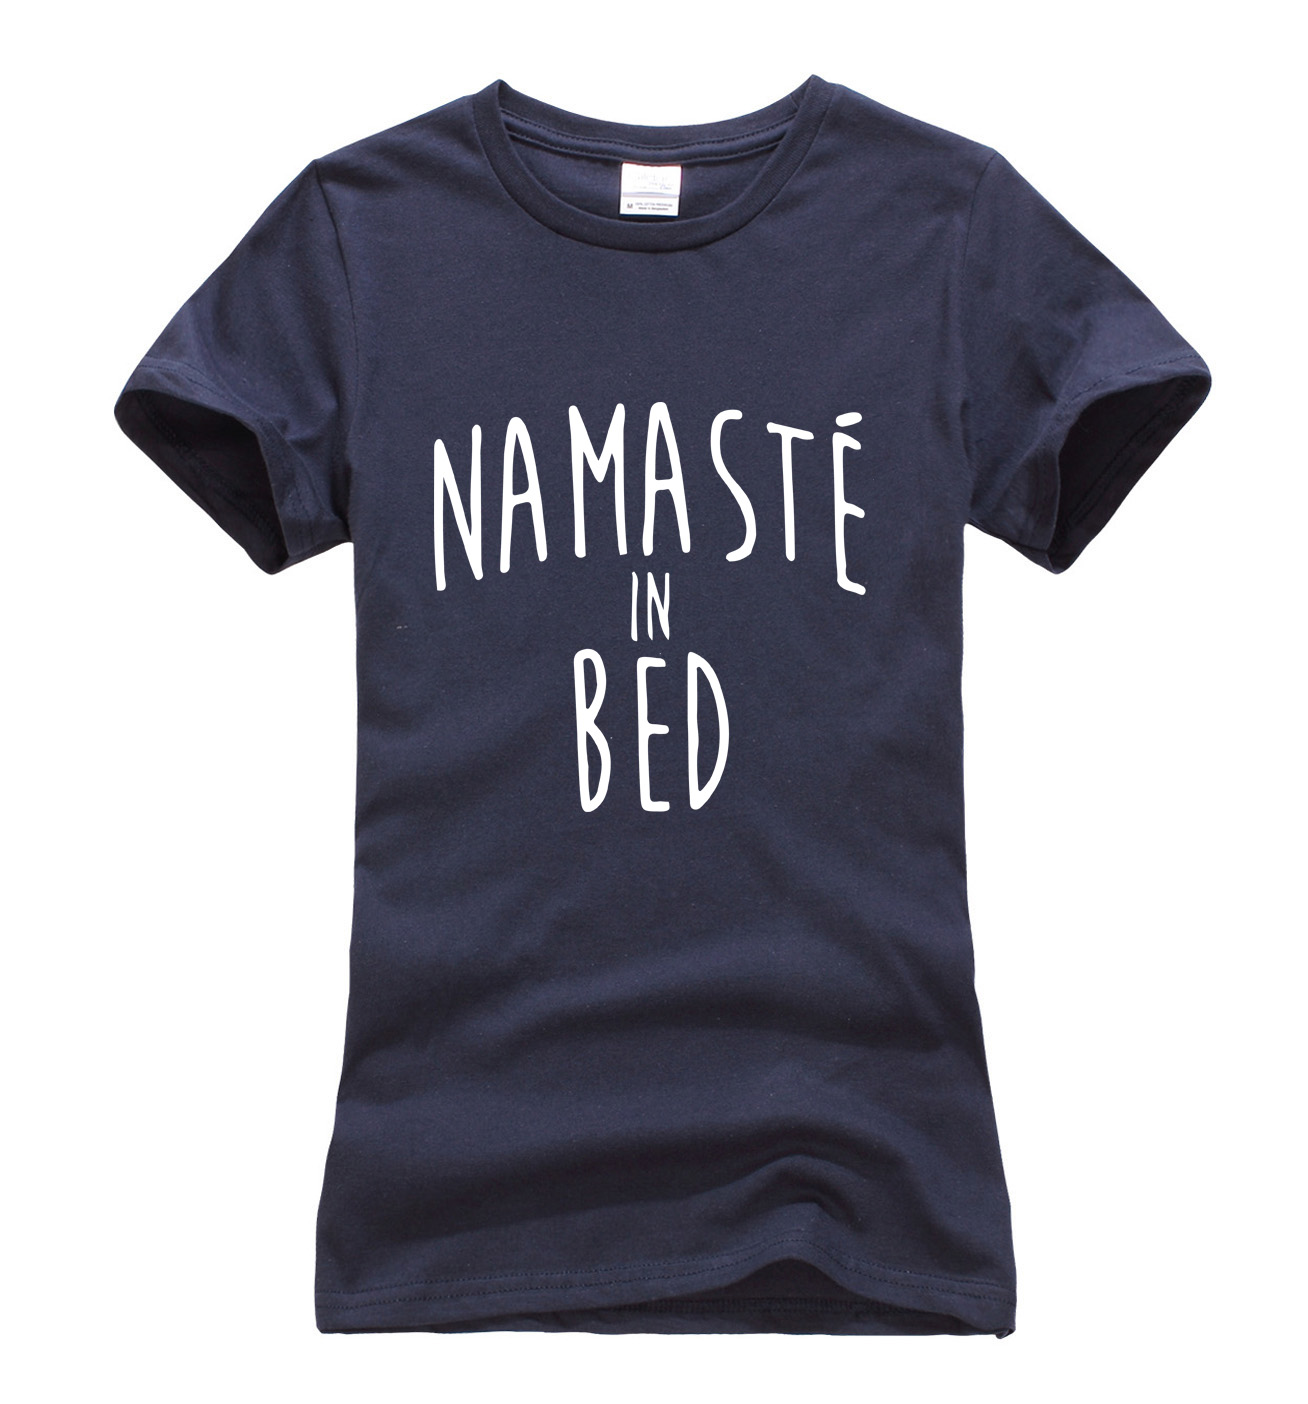 new arrival funny t shirt women 2019 Summer Namaste In Bed letters print harajuku tops brand short sleeve o-neck women t-shirt